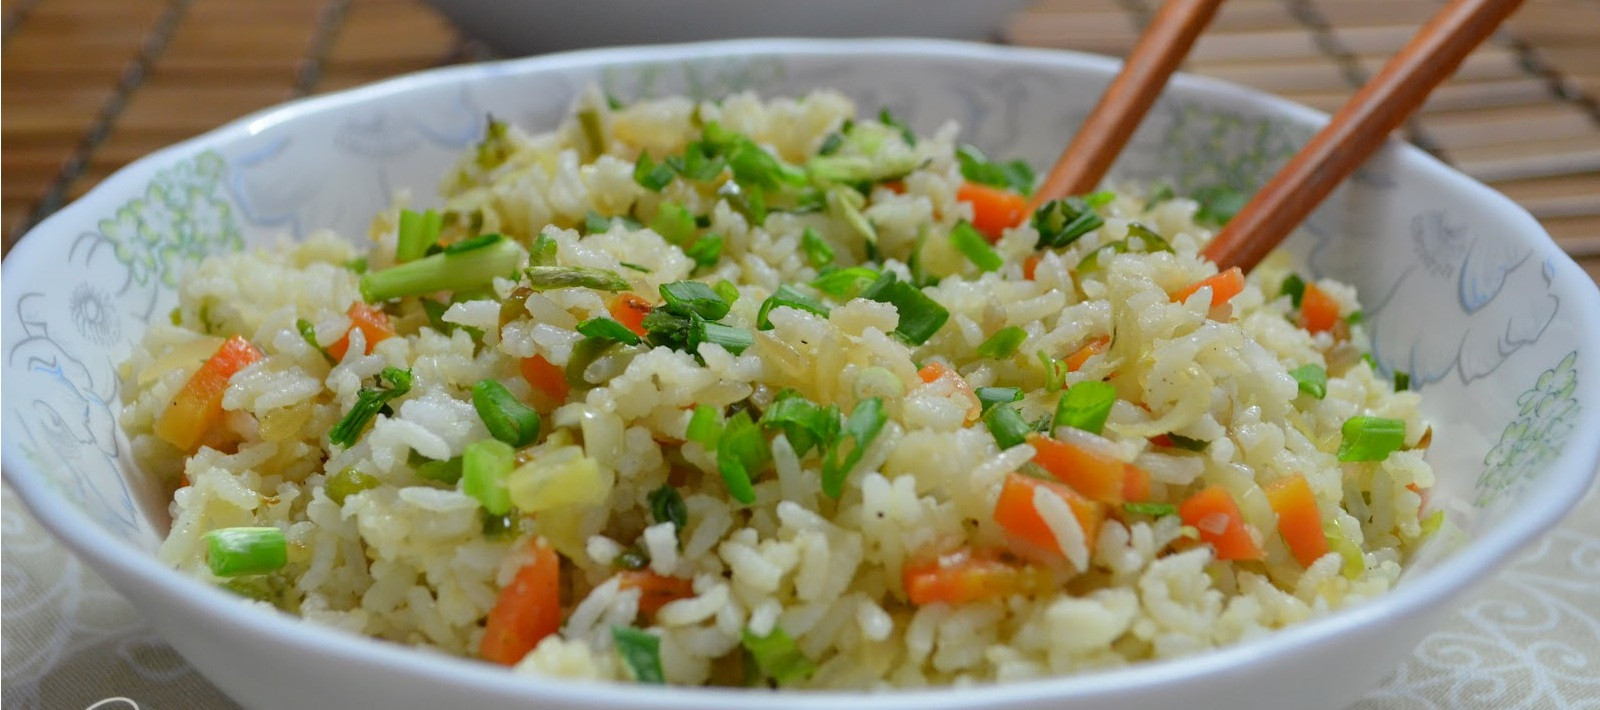 Vegetable Fried Rice  Ve able Fried Rice वेजिटेबल फ्राइड राइस